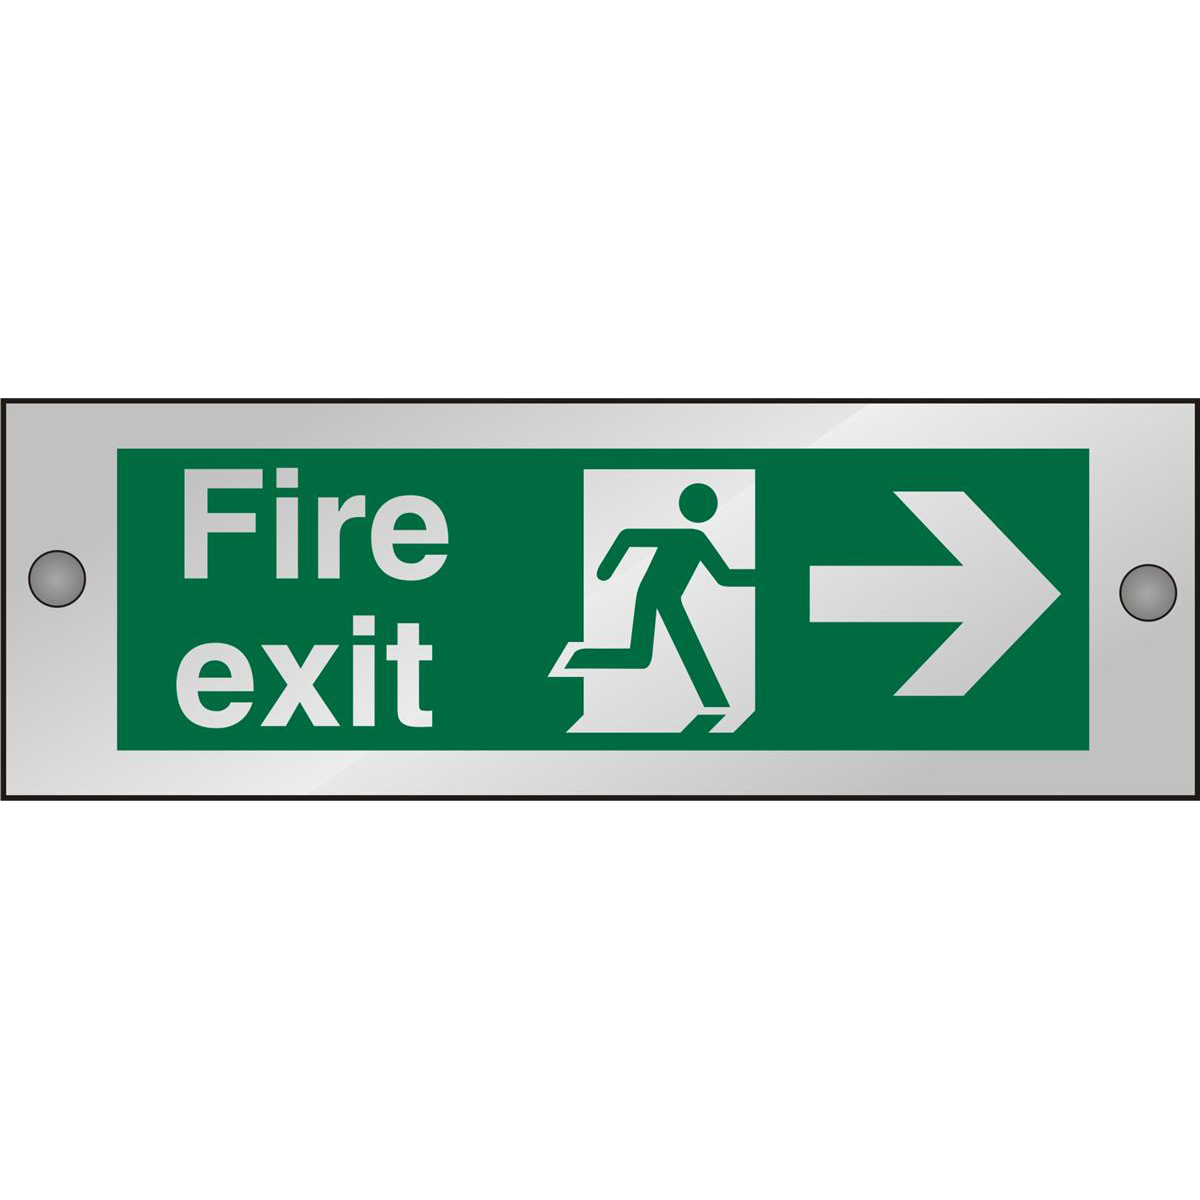 Clear Sign 300x100 5mm FireExit Man Running&Arrow Right Ref CACSP121300x100 Up to 10 Day Leadtime